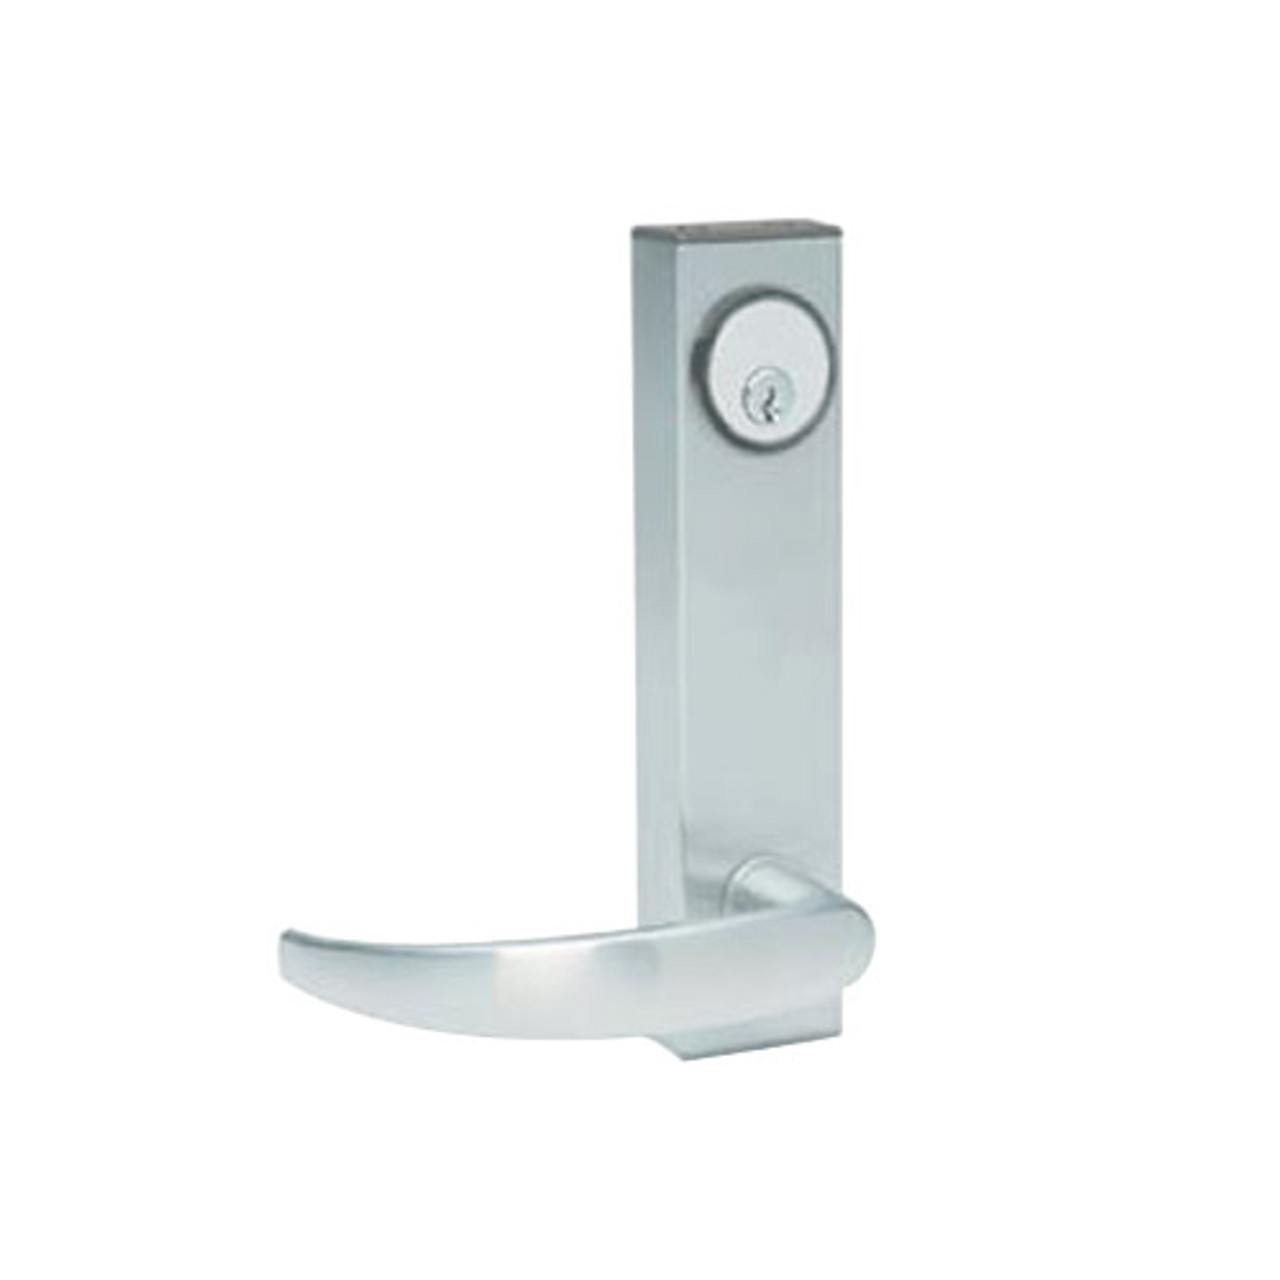 3080E-01-0-96-30 US32 Adams Rite Electrified Entry Trim with Curve Lever in Bright Stainless Finish